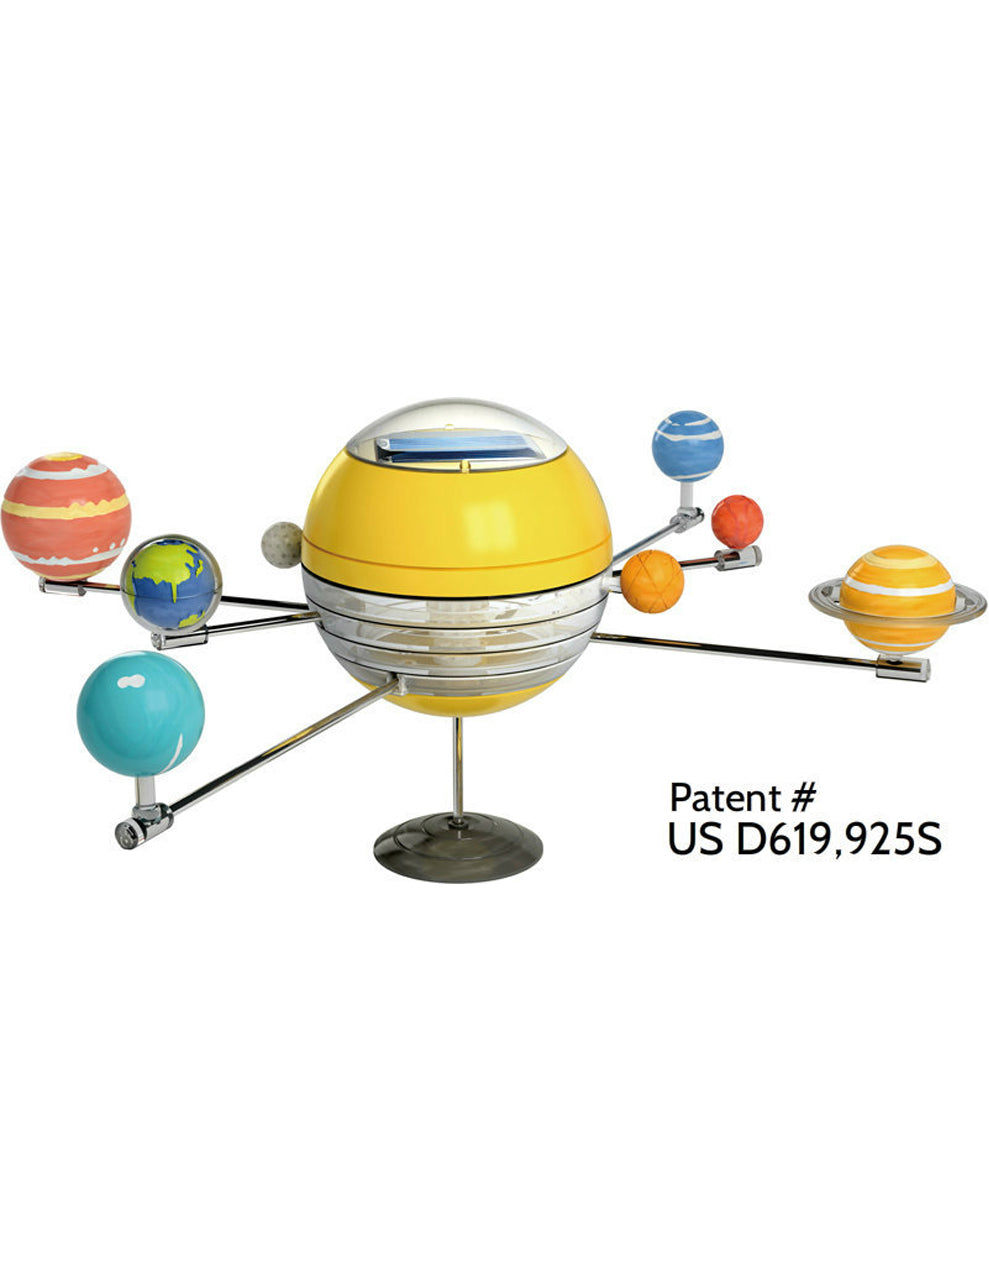 OWI Robot The Solar System-Mini Solar Kit owi-msk679